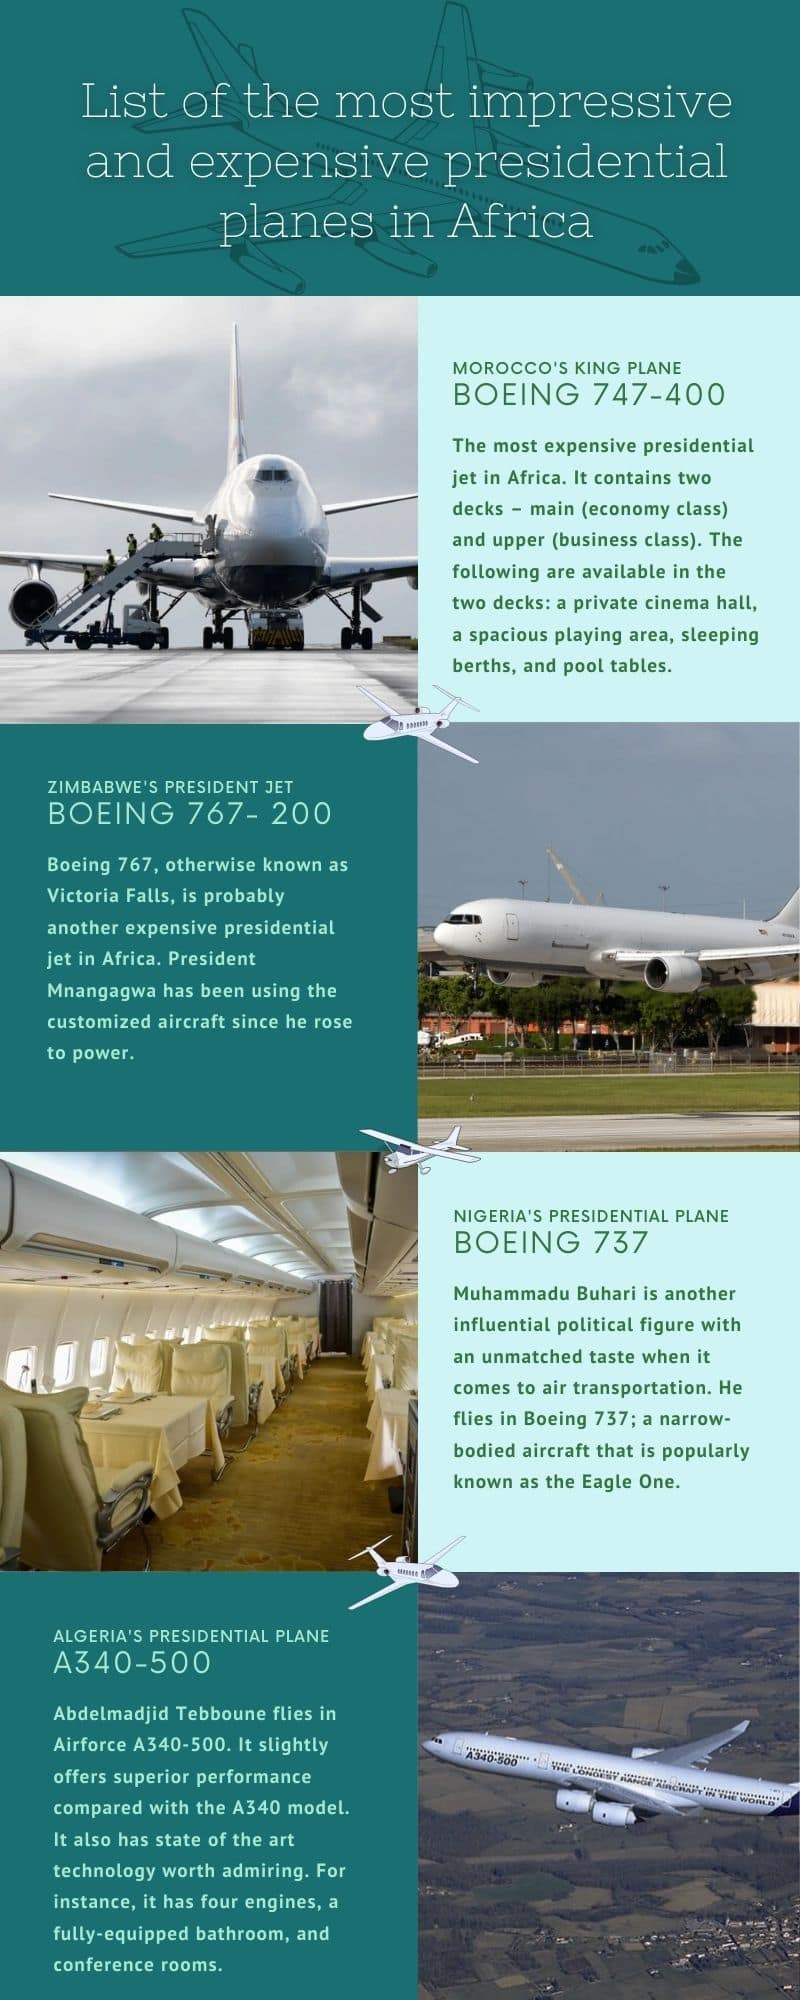 the most impressive and expensive presidential planes in Africa 2020